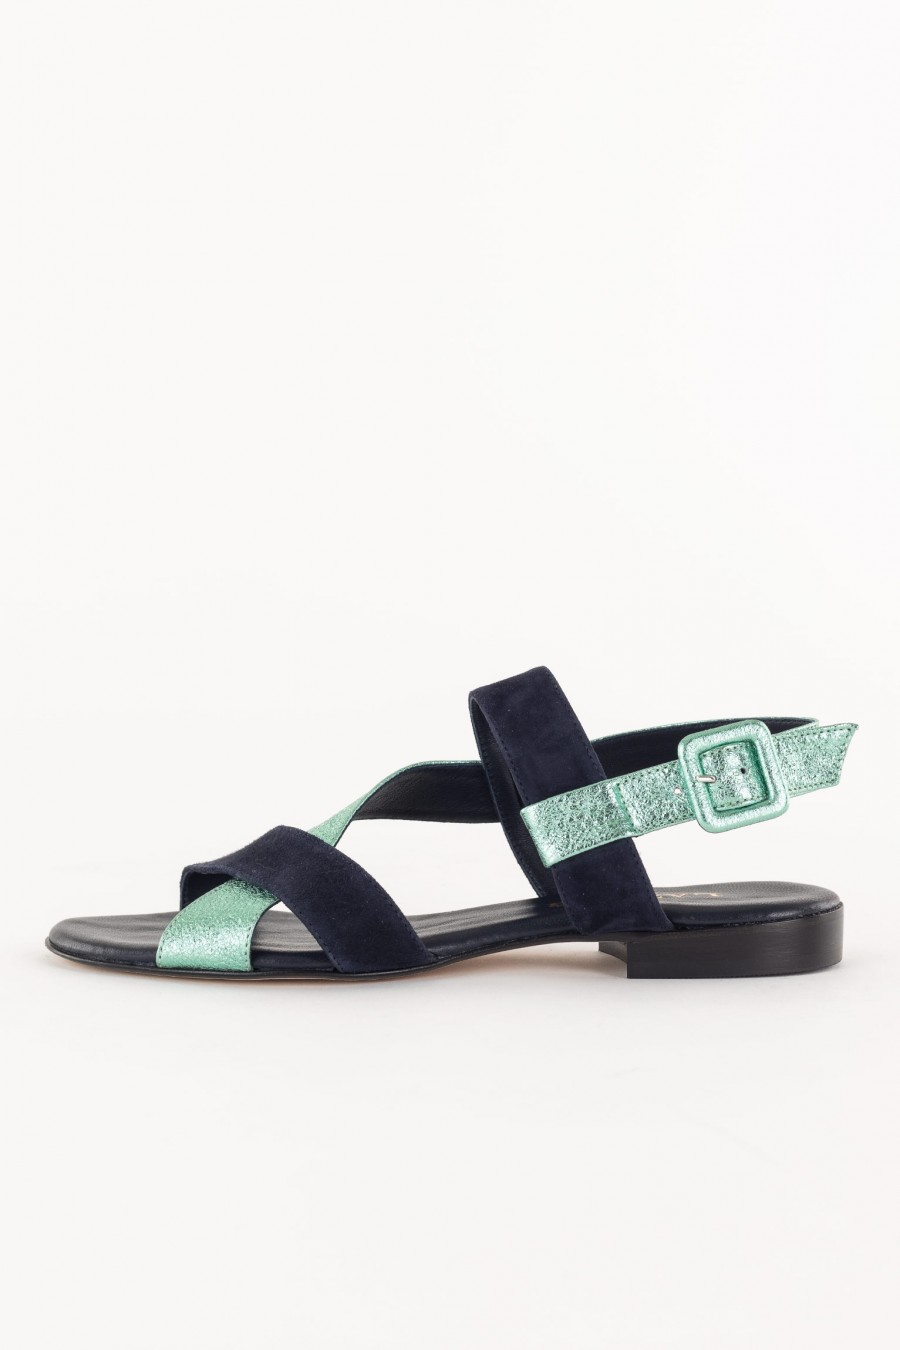 Bi-color sandal